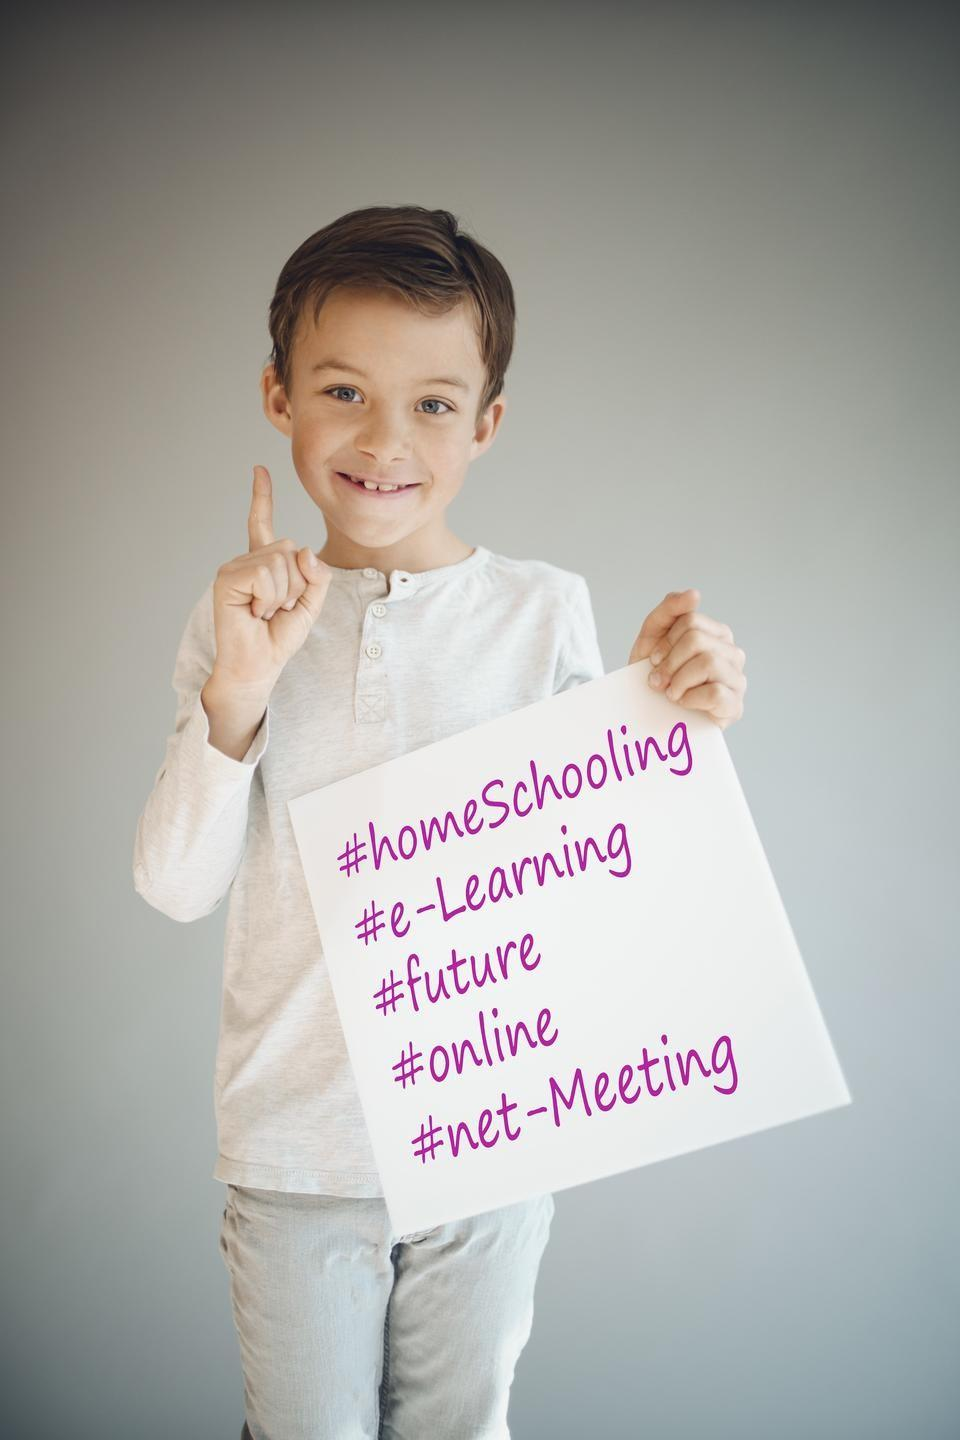 Home-schooling child with e-learning and online business sign.